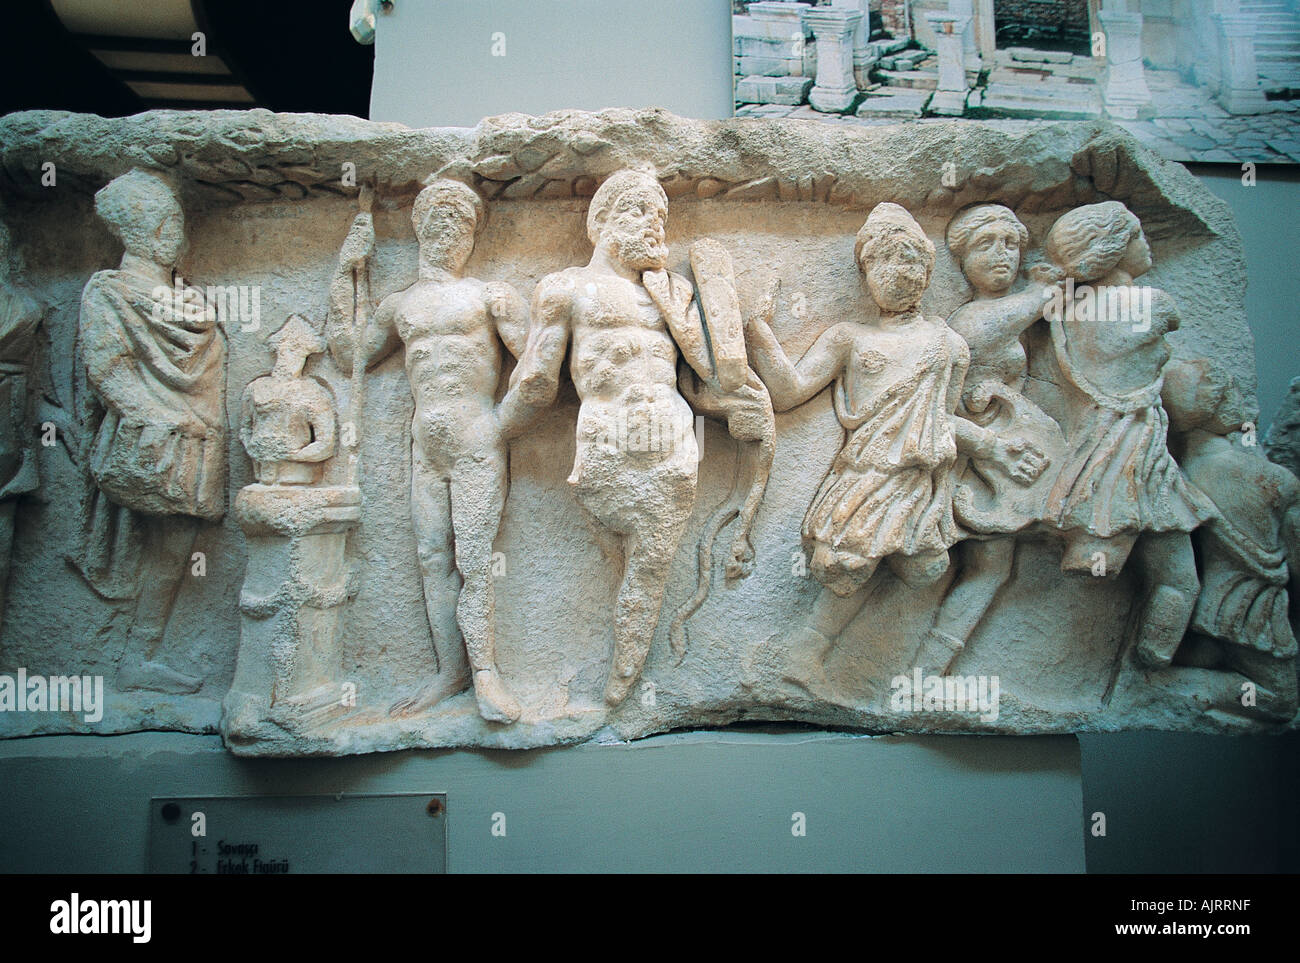 Statues and reliefs in Ephesus ancient city, Turkey. - Stock Image